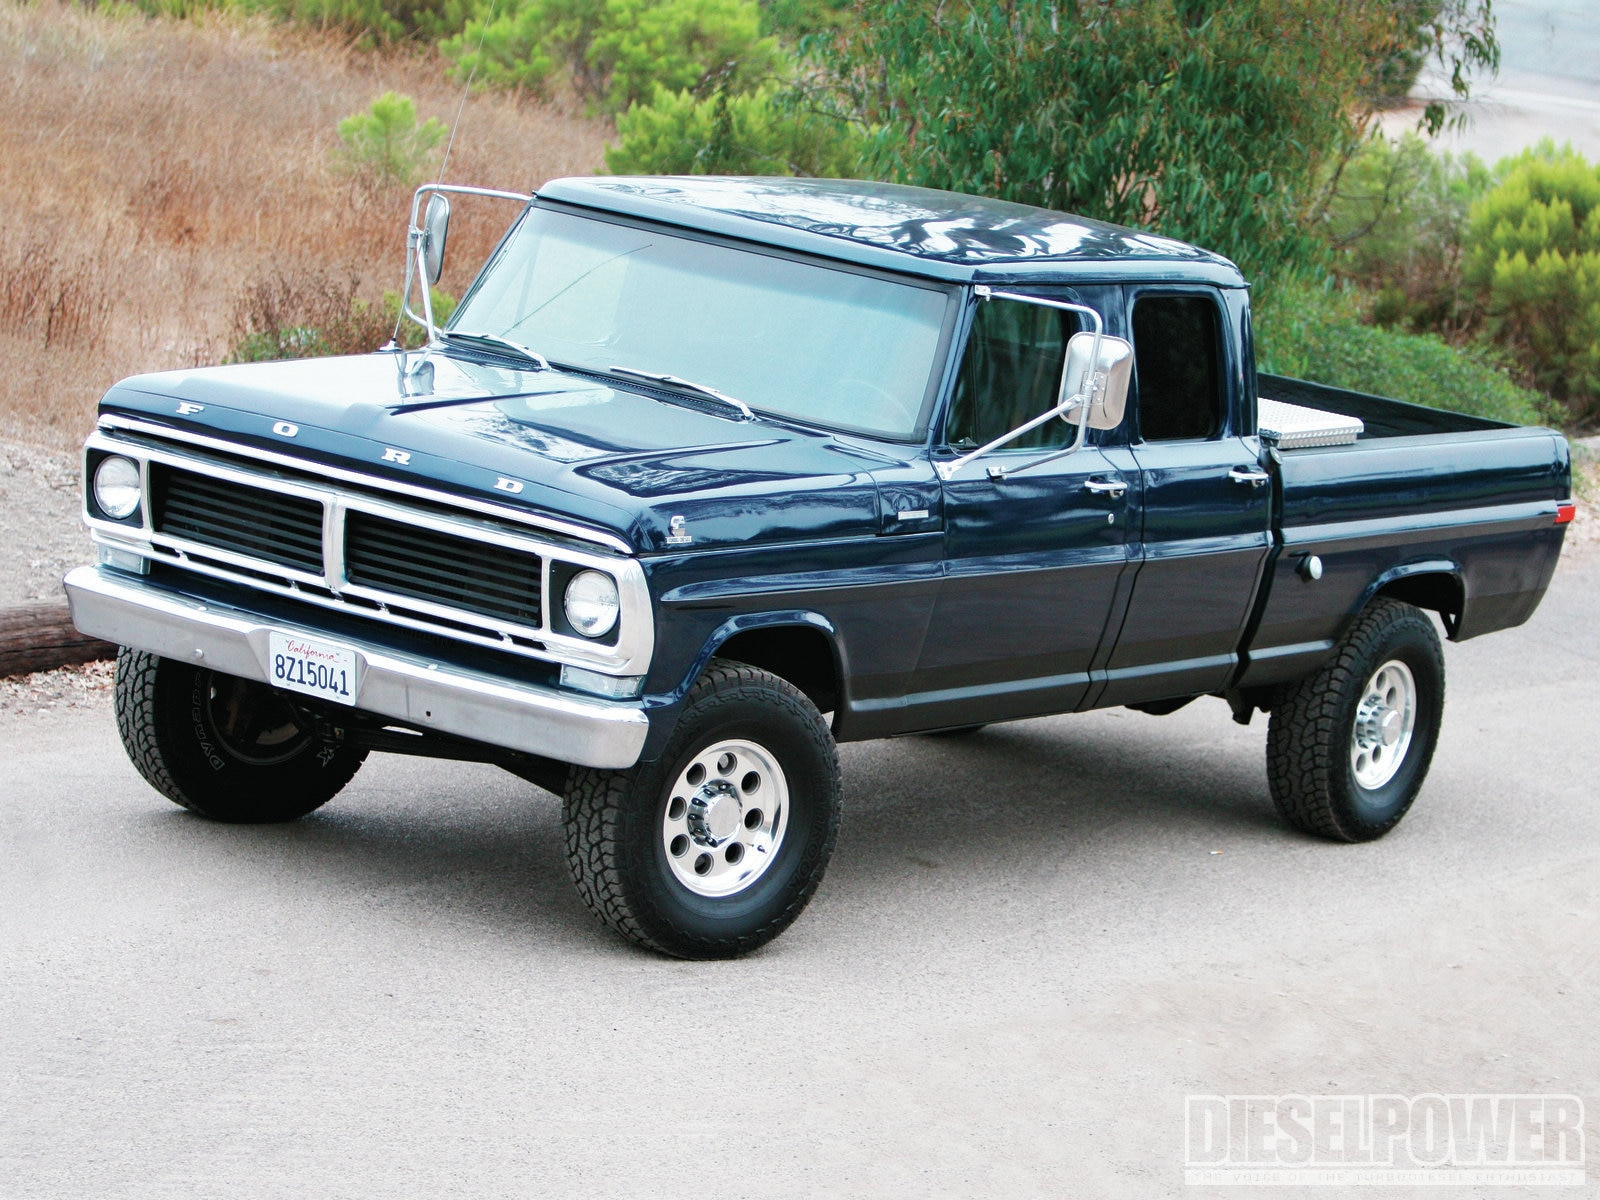 1970 Ford F-250 Crew Cab: Low-Budget, High-Value Photo & Image Gallery